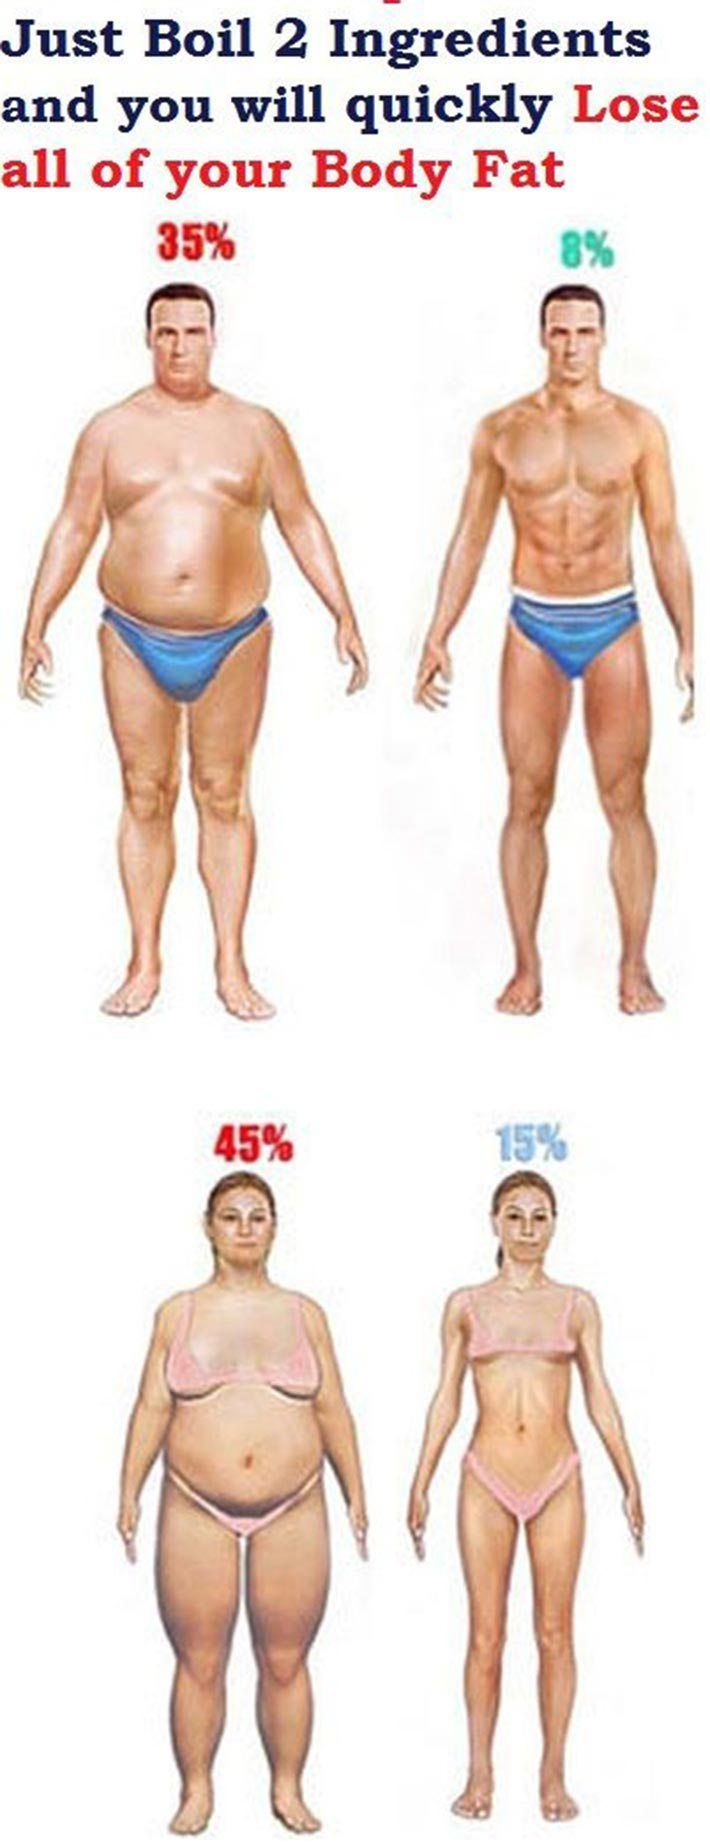 How to reduce the hip fat image 2